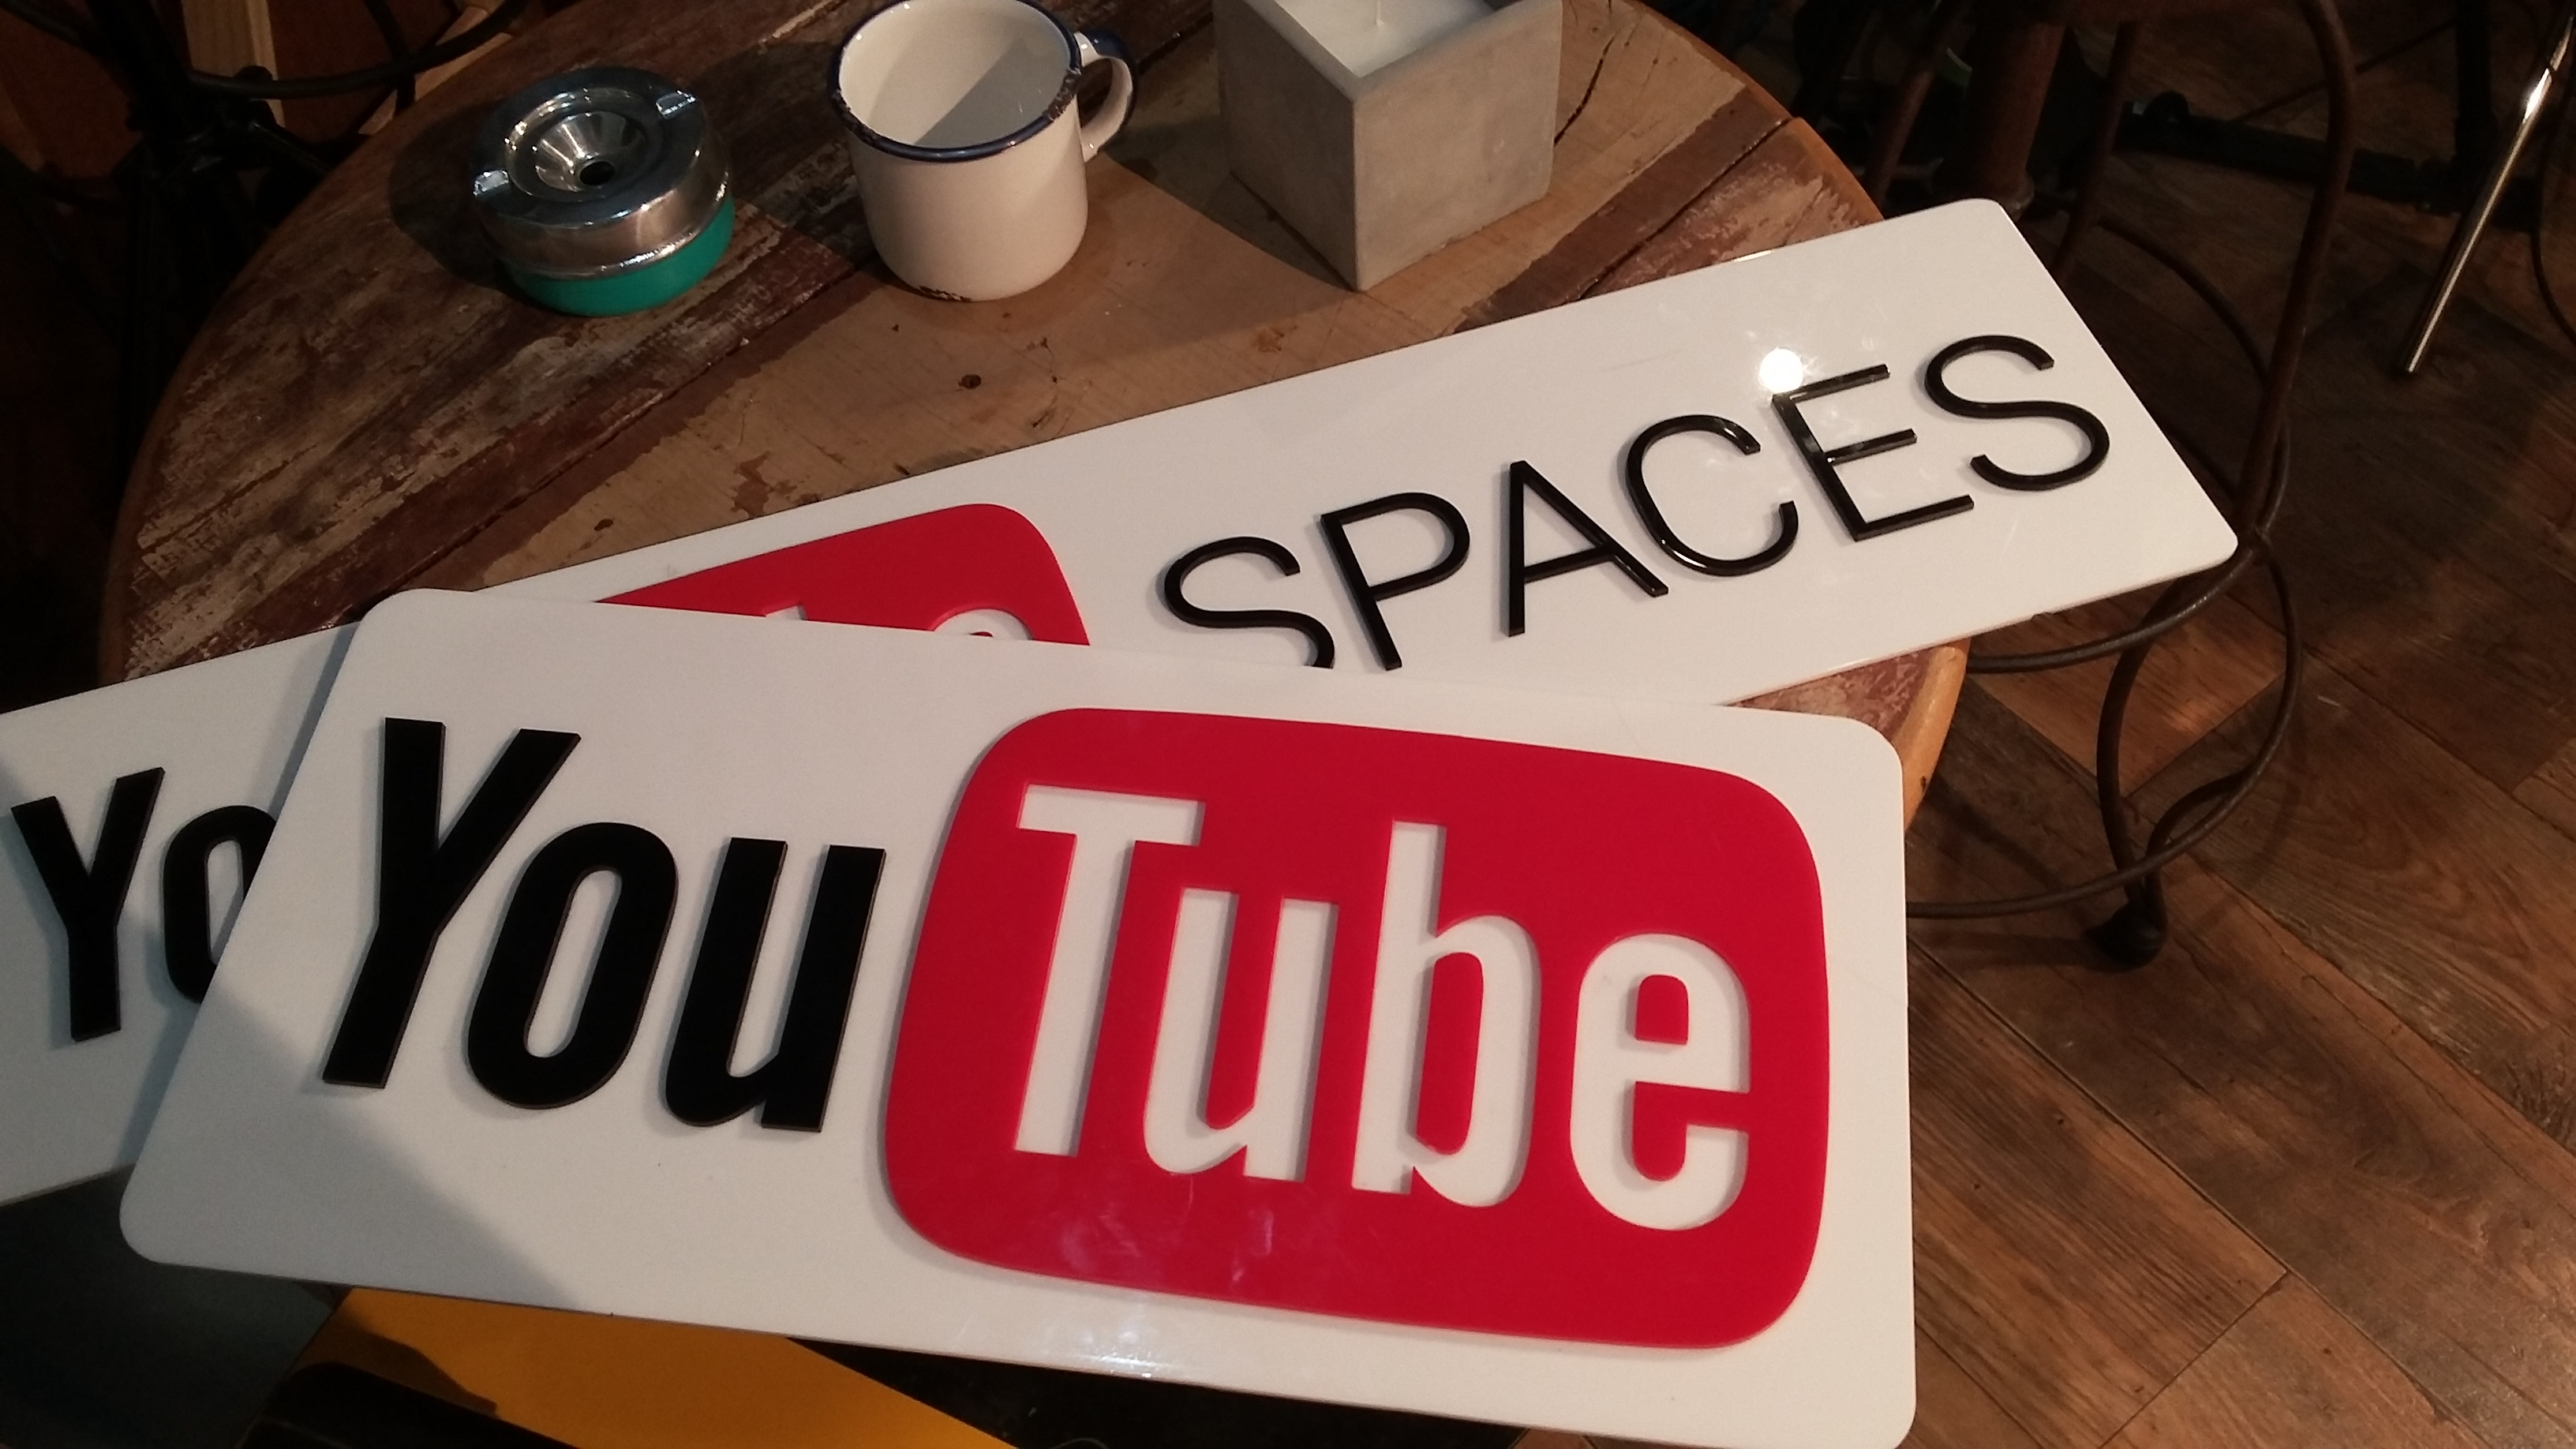 Live no youtube space